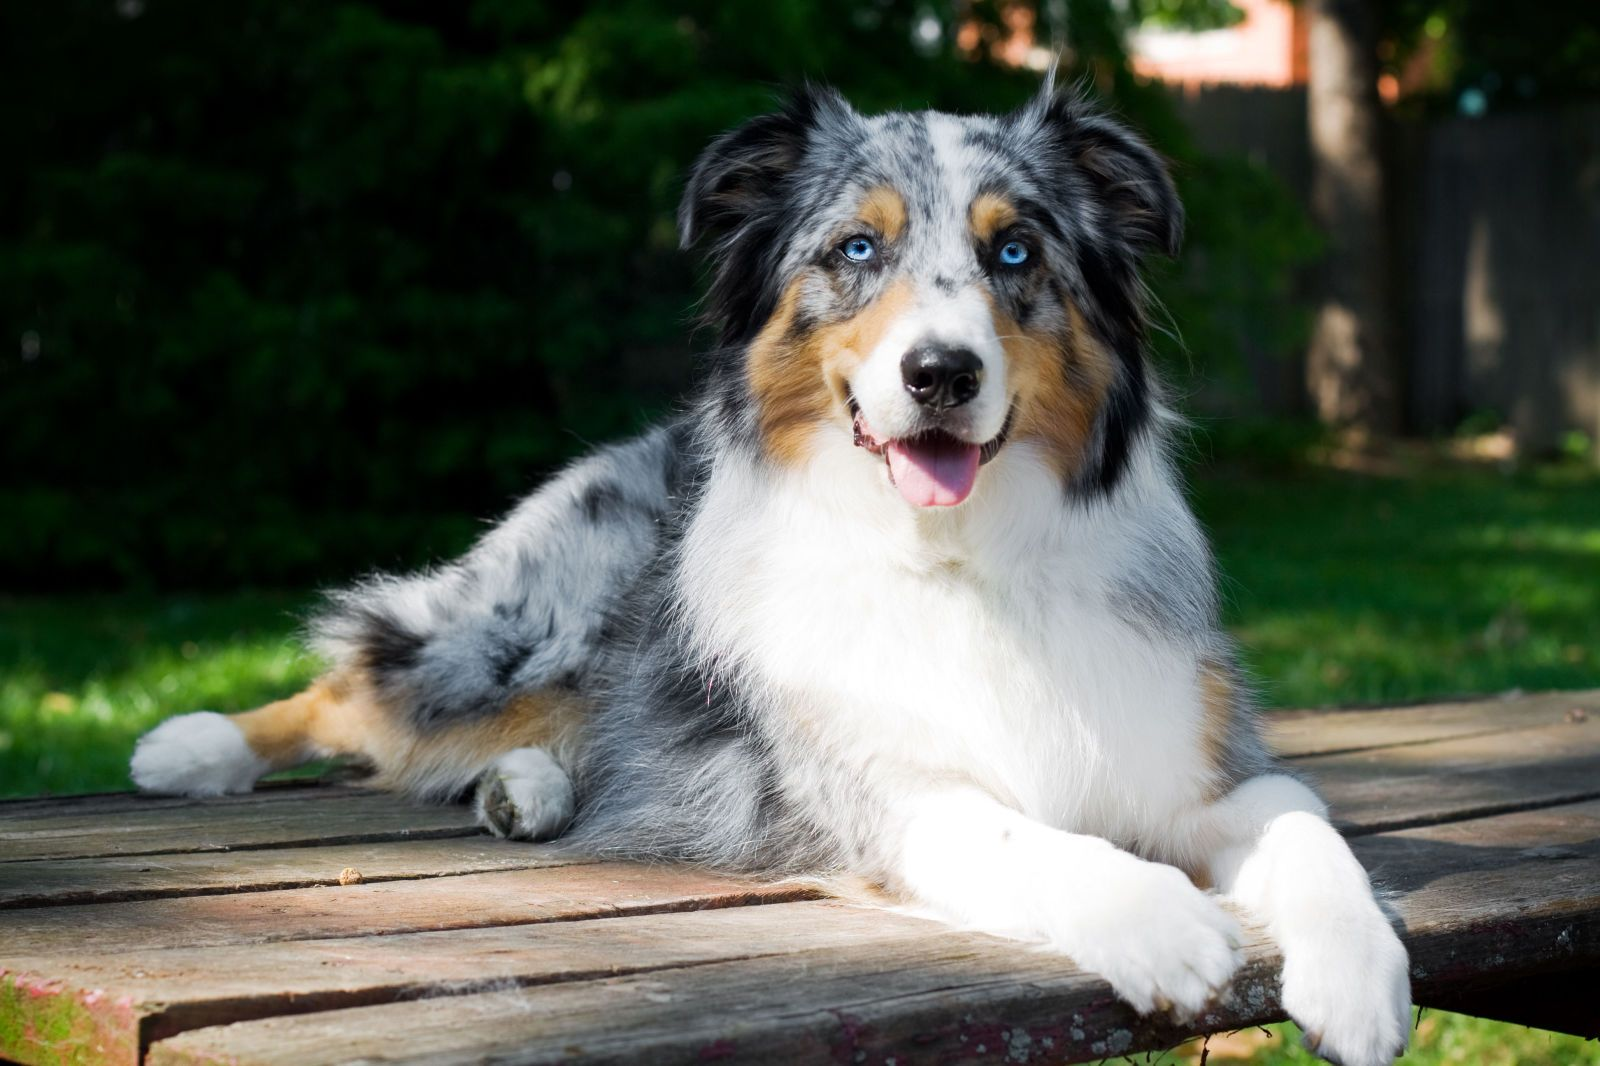 40 Medium Sized Dog Breeds That Are The Perfect First Pet For Any Family Best Medium Sized Dogs Medium Sized Dogs Breeds Best Dogs For Families